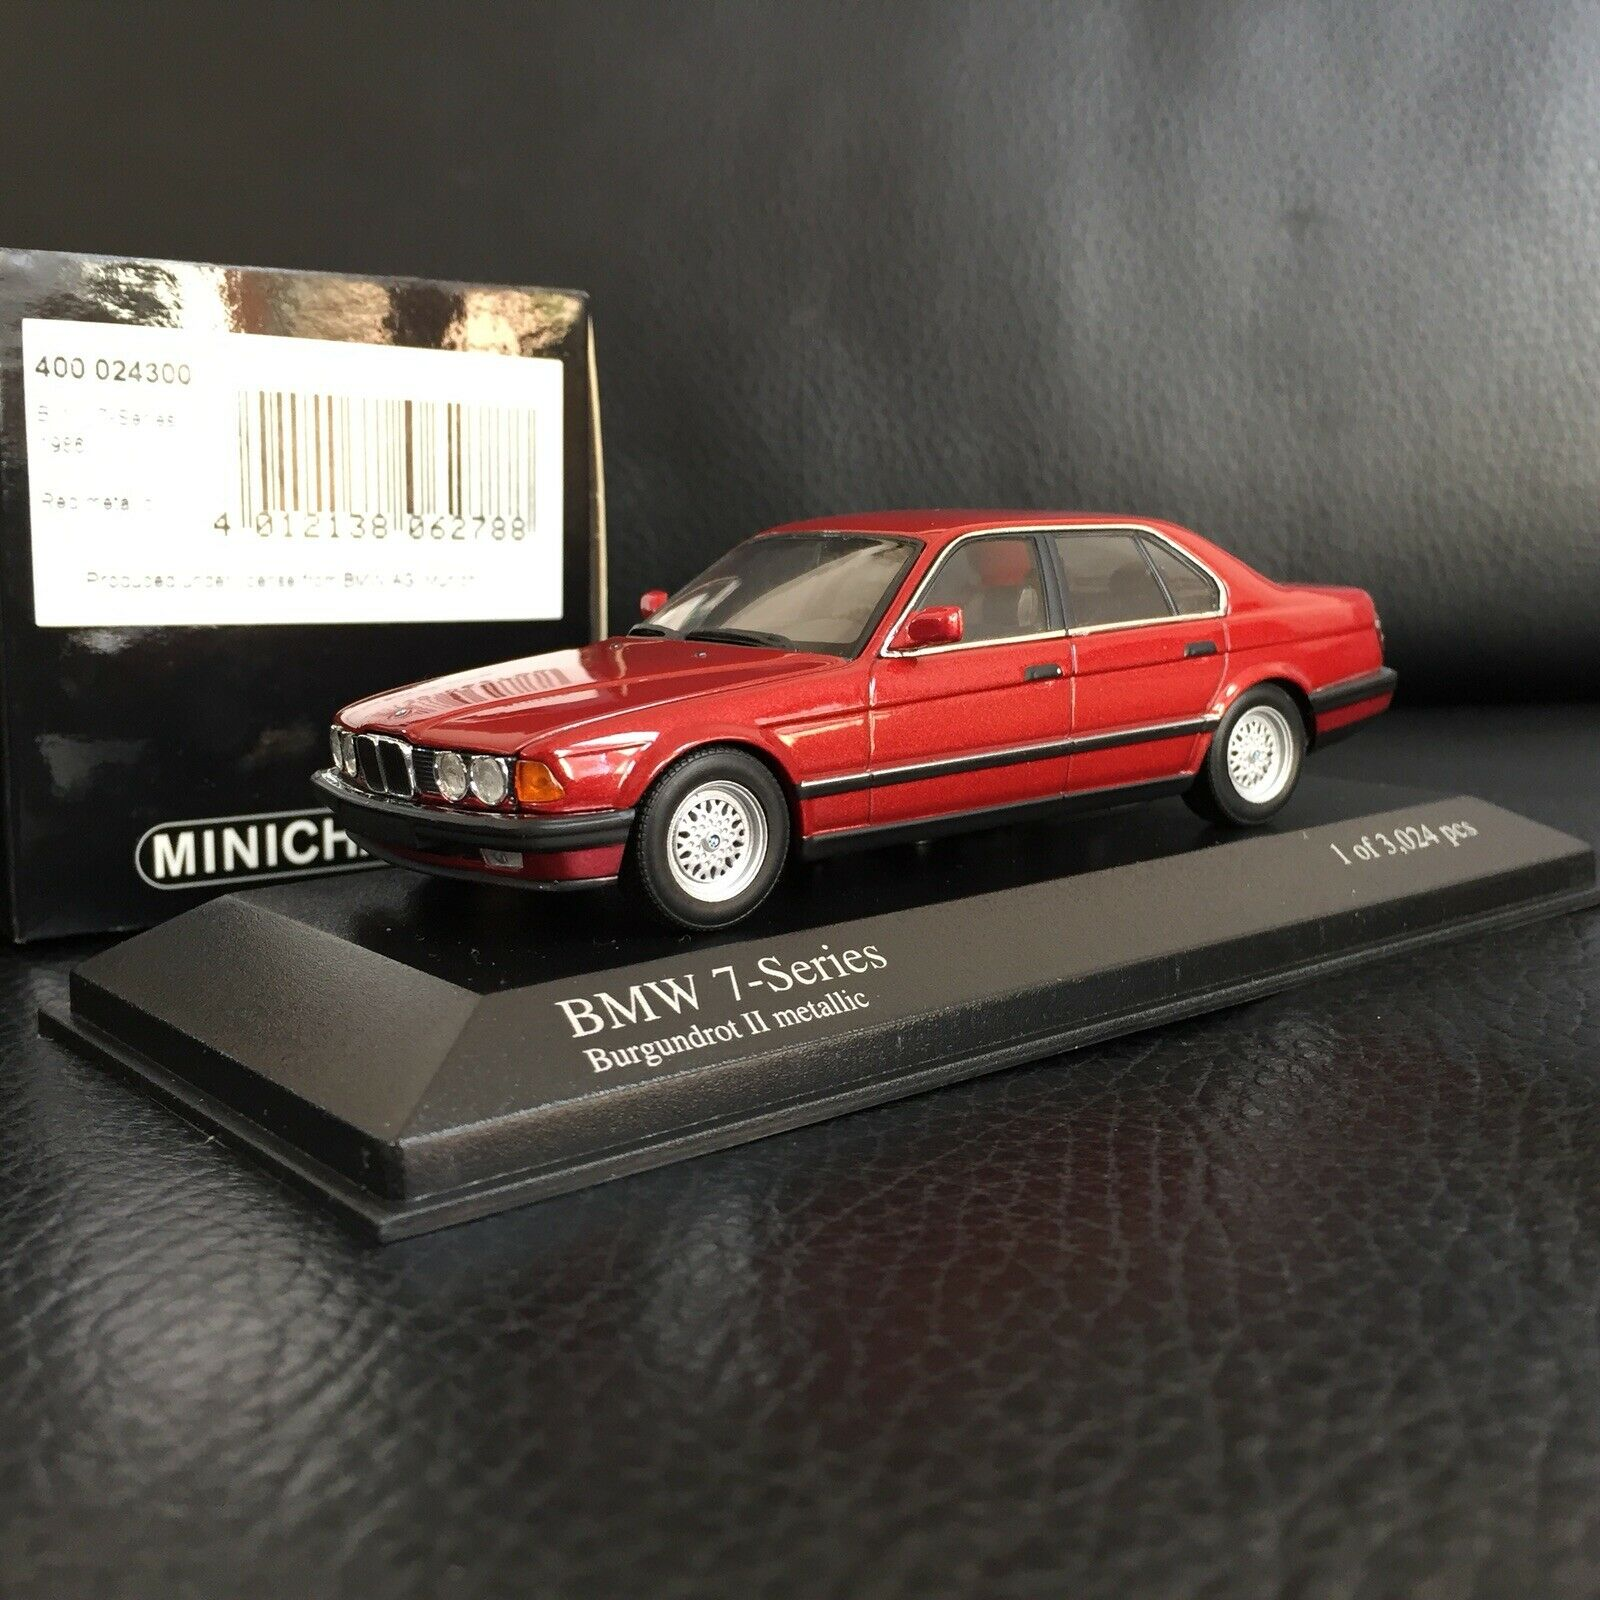 Minichamps 1 43 BMW 7-Series 1986 cod.400 024300